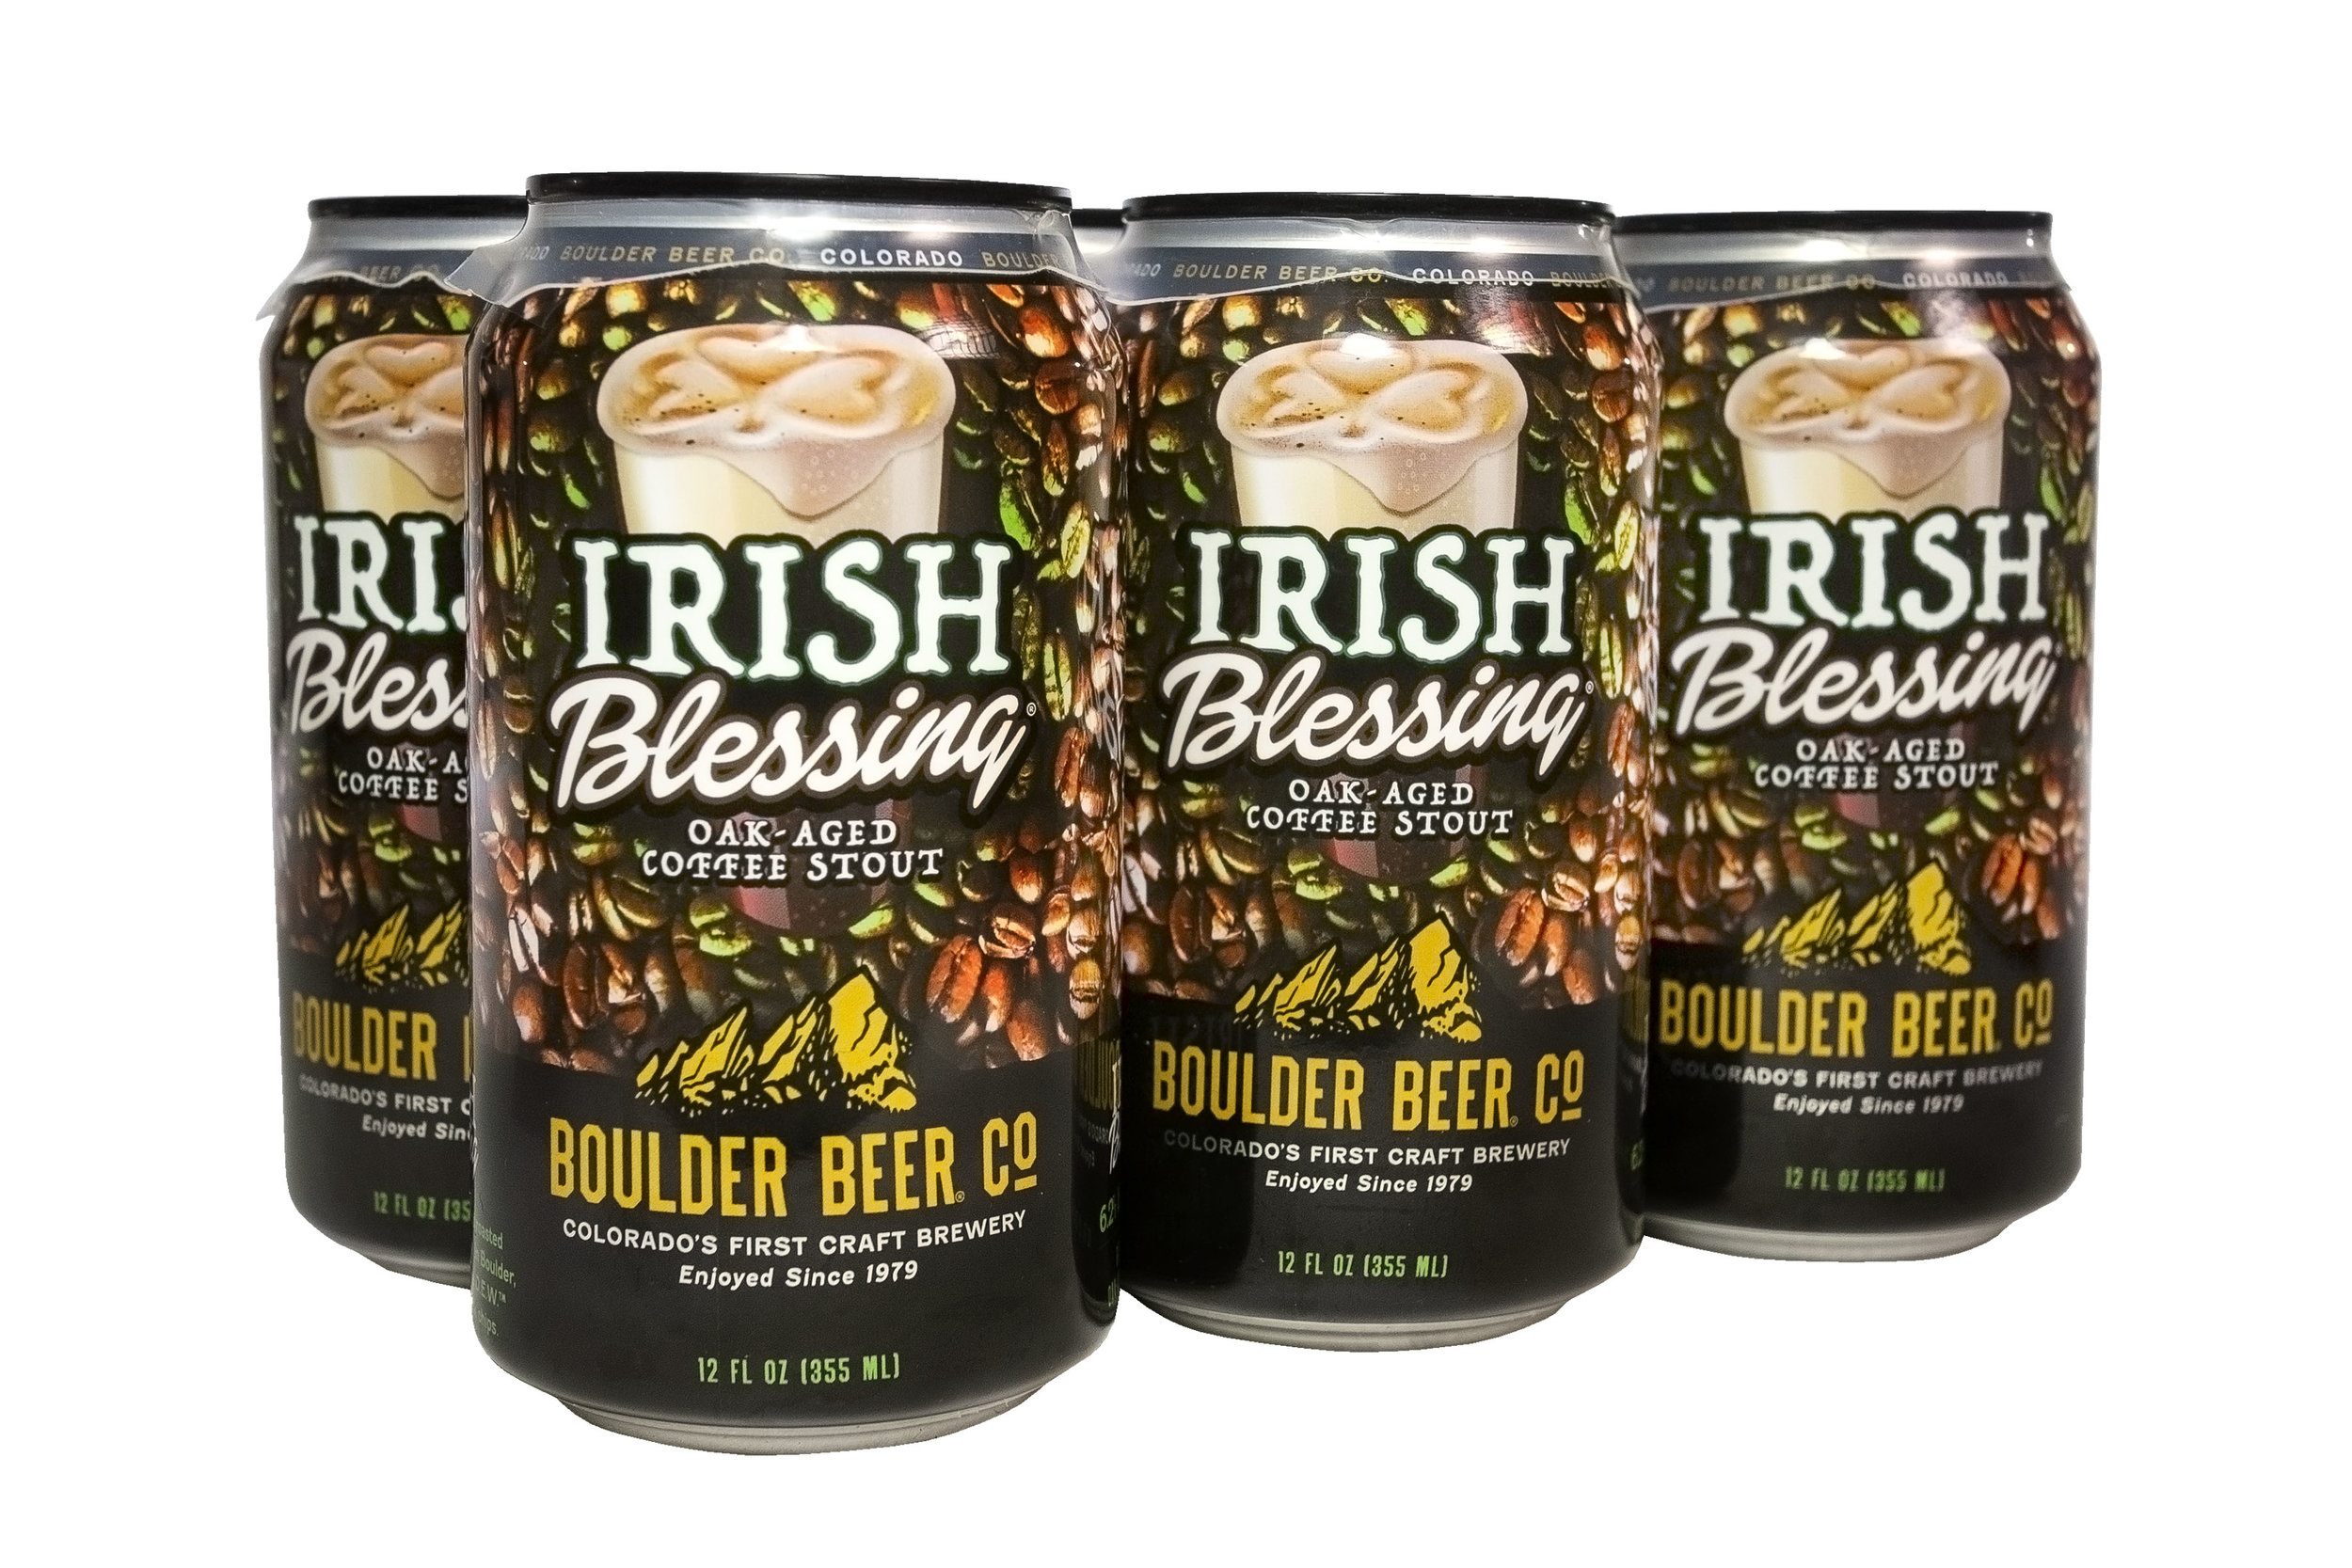 Irish-Blessing-6-Pack-Angle.jpg